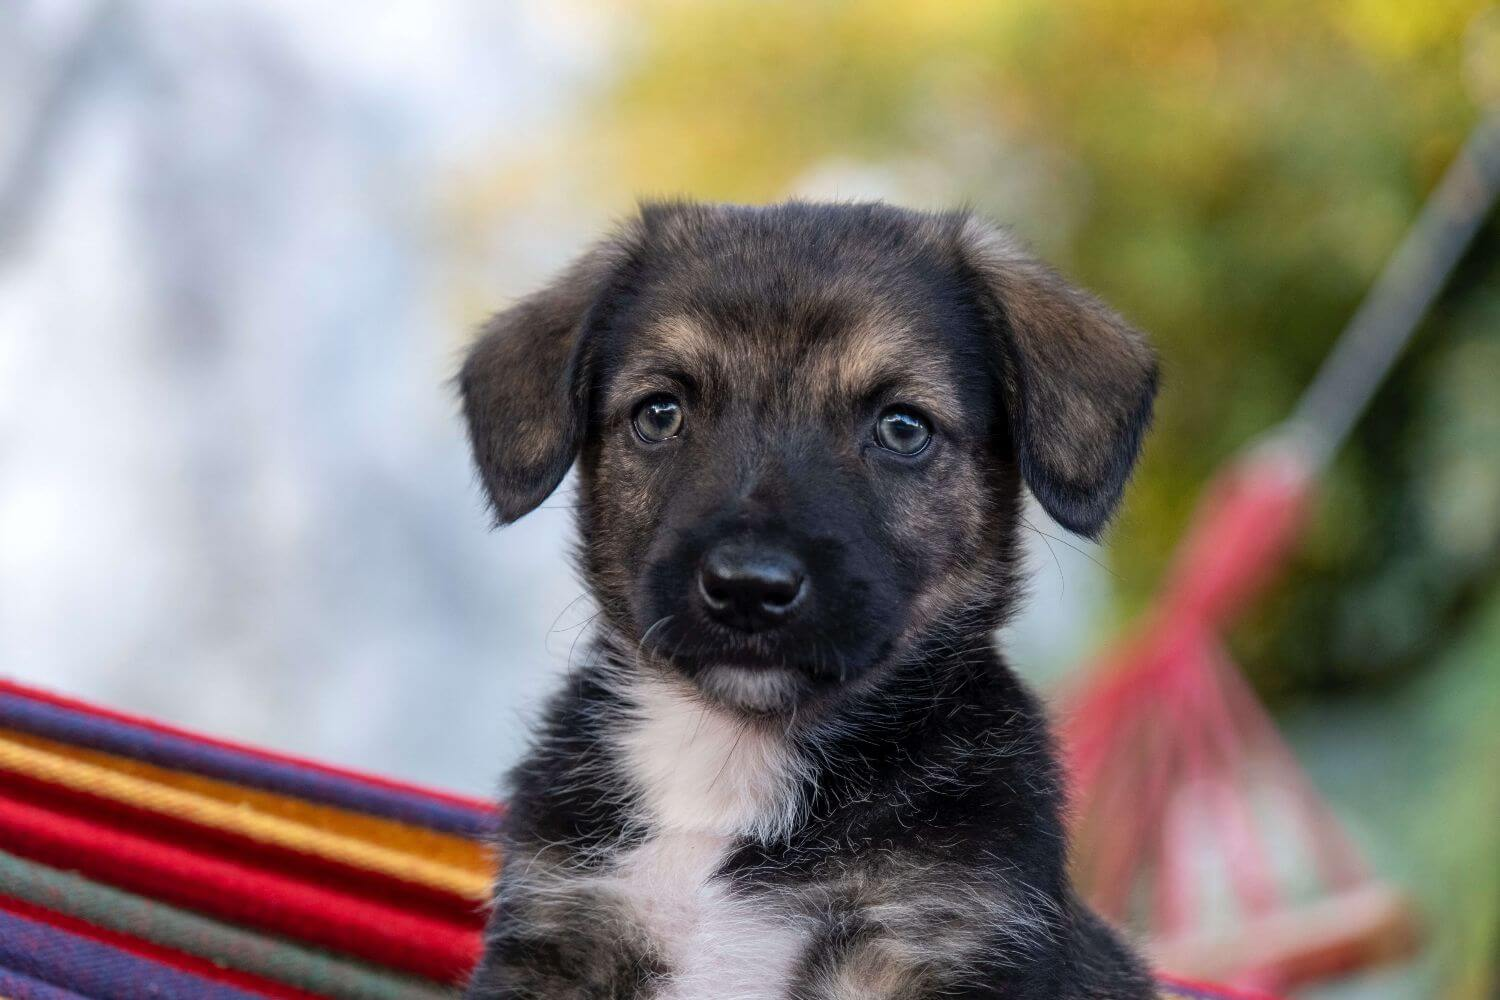 The checklist to welcome a puppy at home